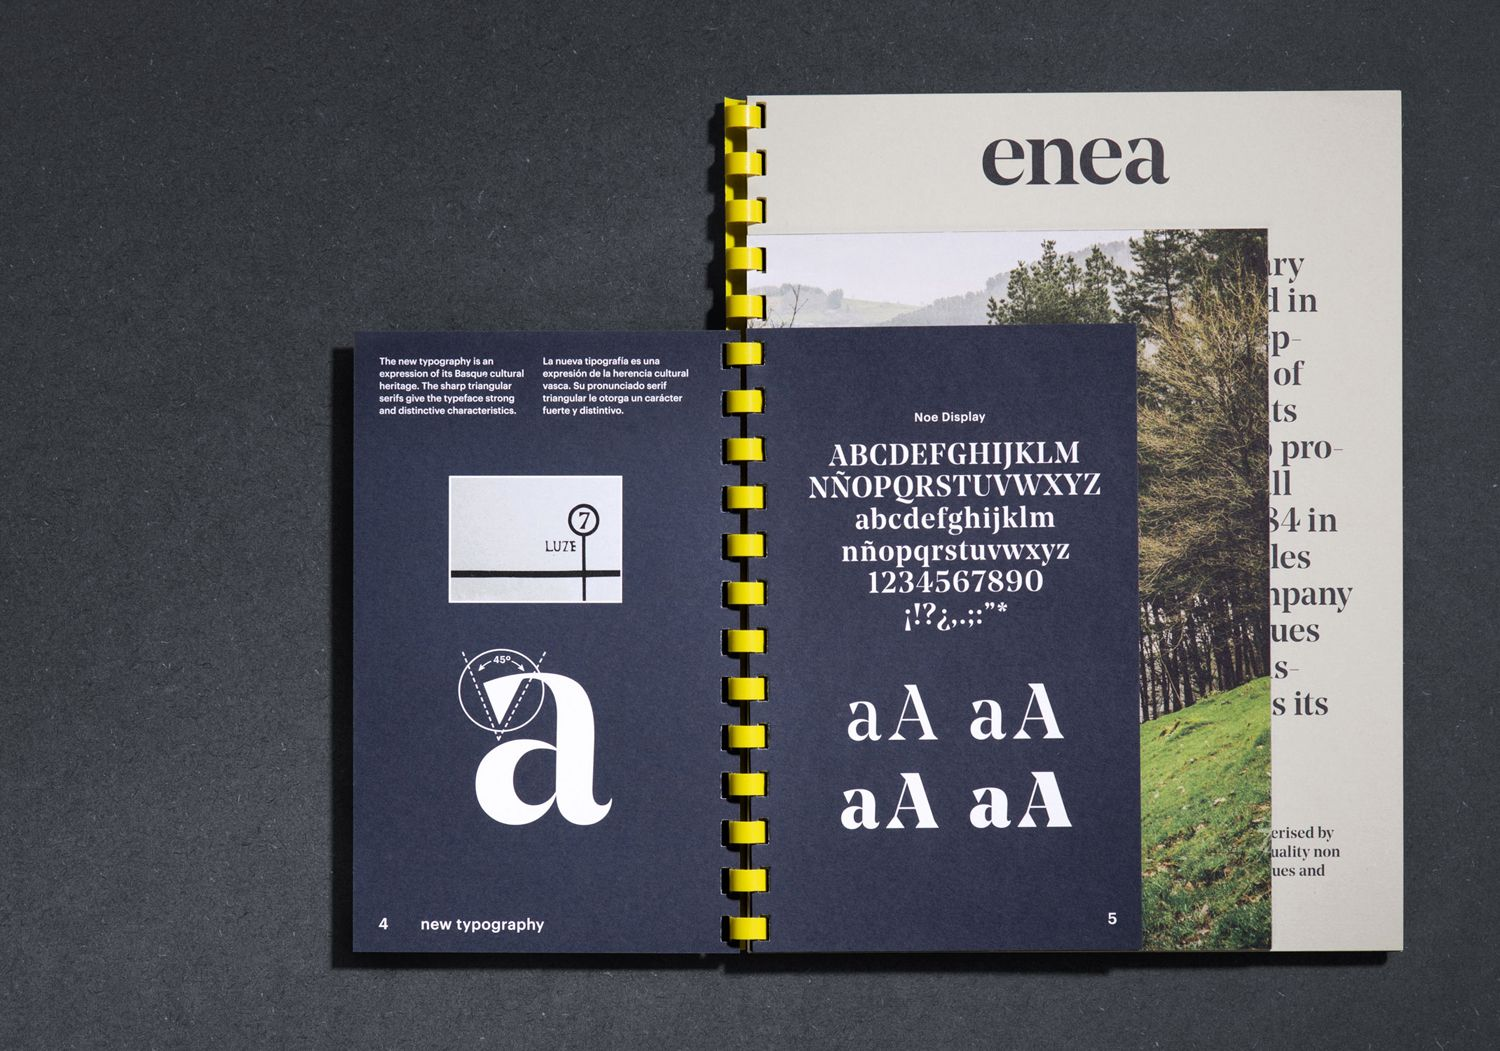 New Brand Identity for Enea by Clase bcn — BP&O | Pinterest | Print ...